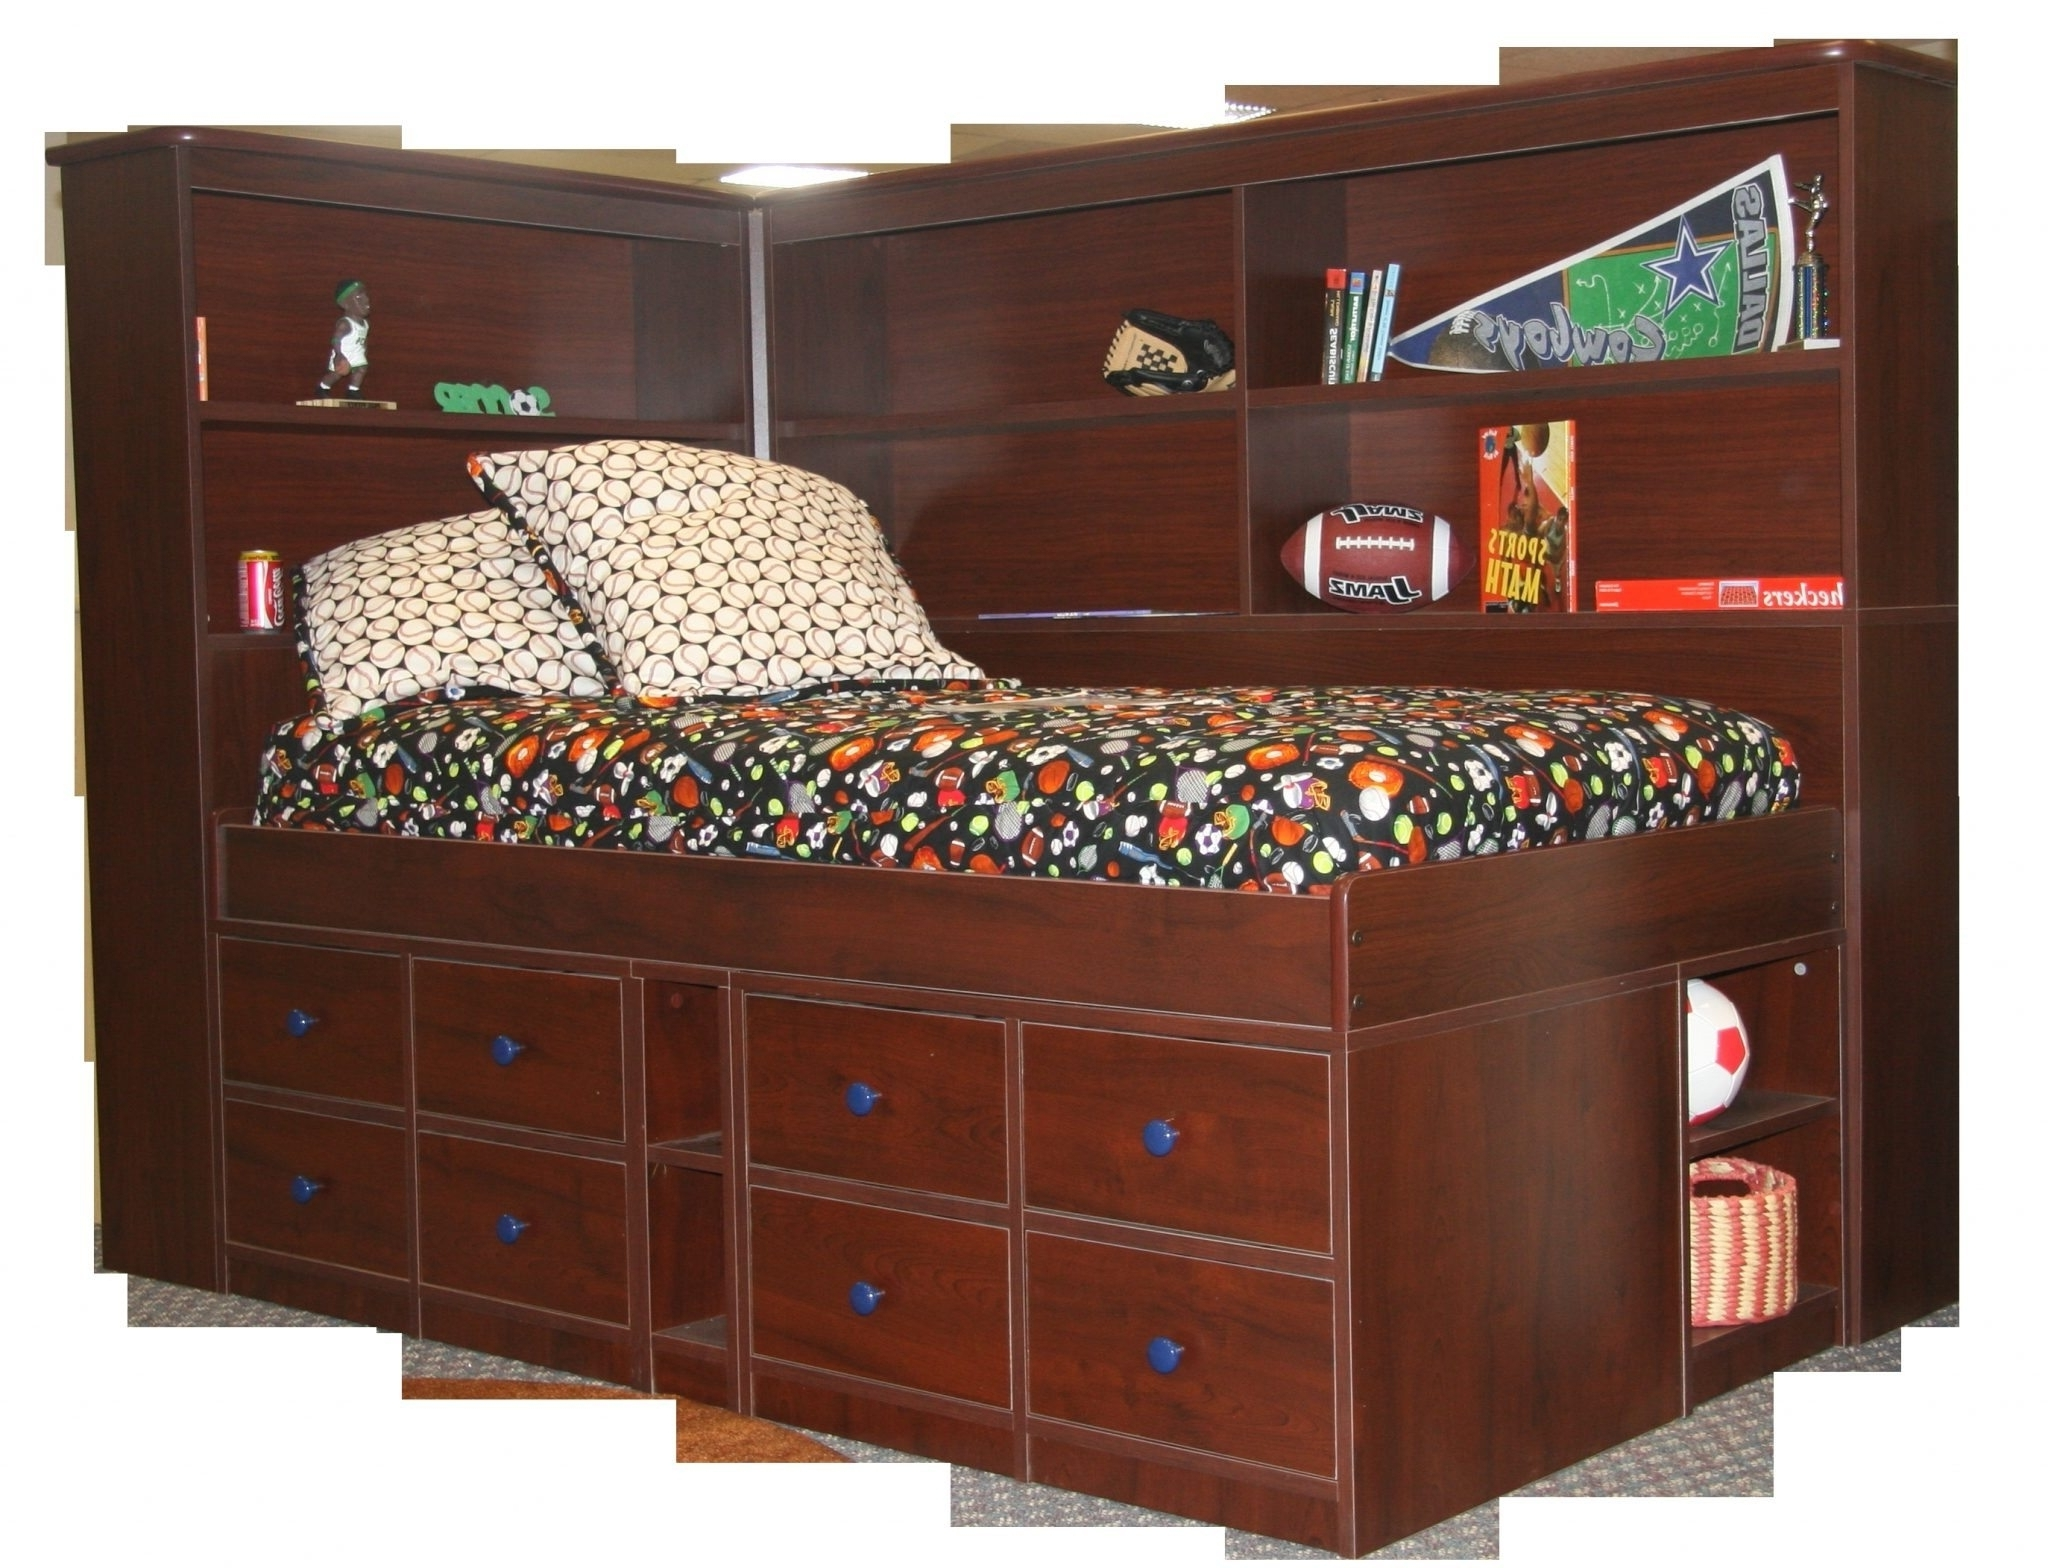 Twin Bed With Bookcases Headboard Intended For Well Known Twin Bed With Shelf Headboard • Shelves (View 13 of 15)